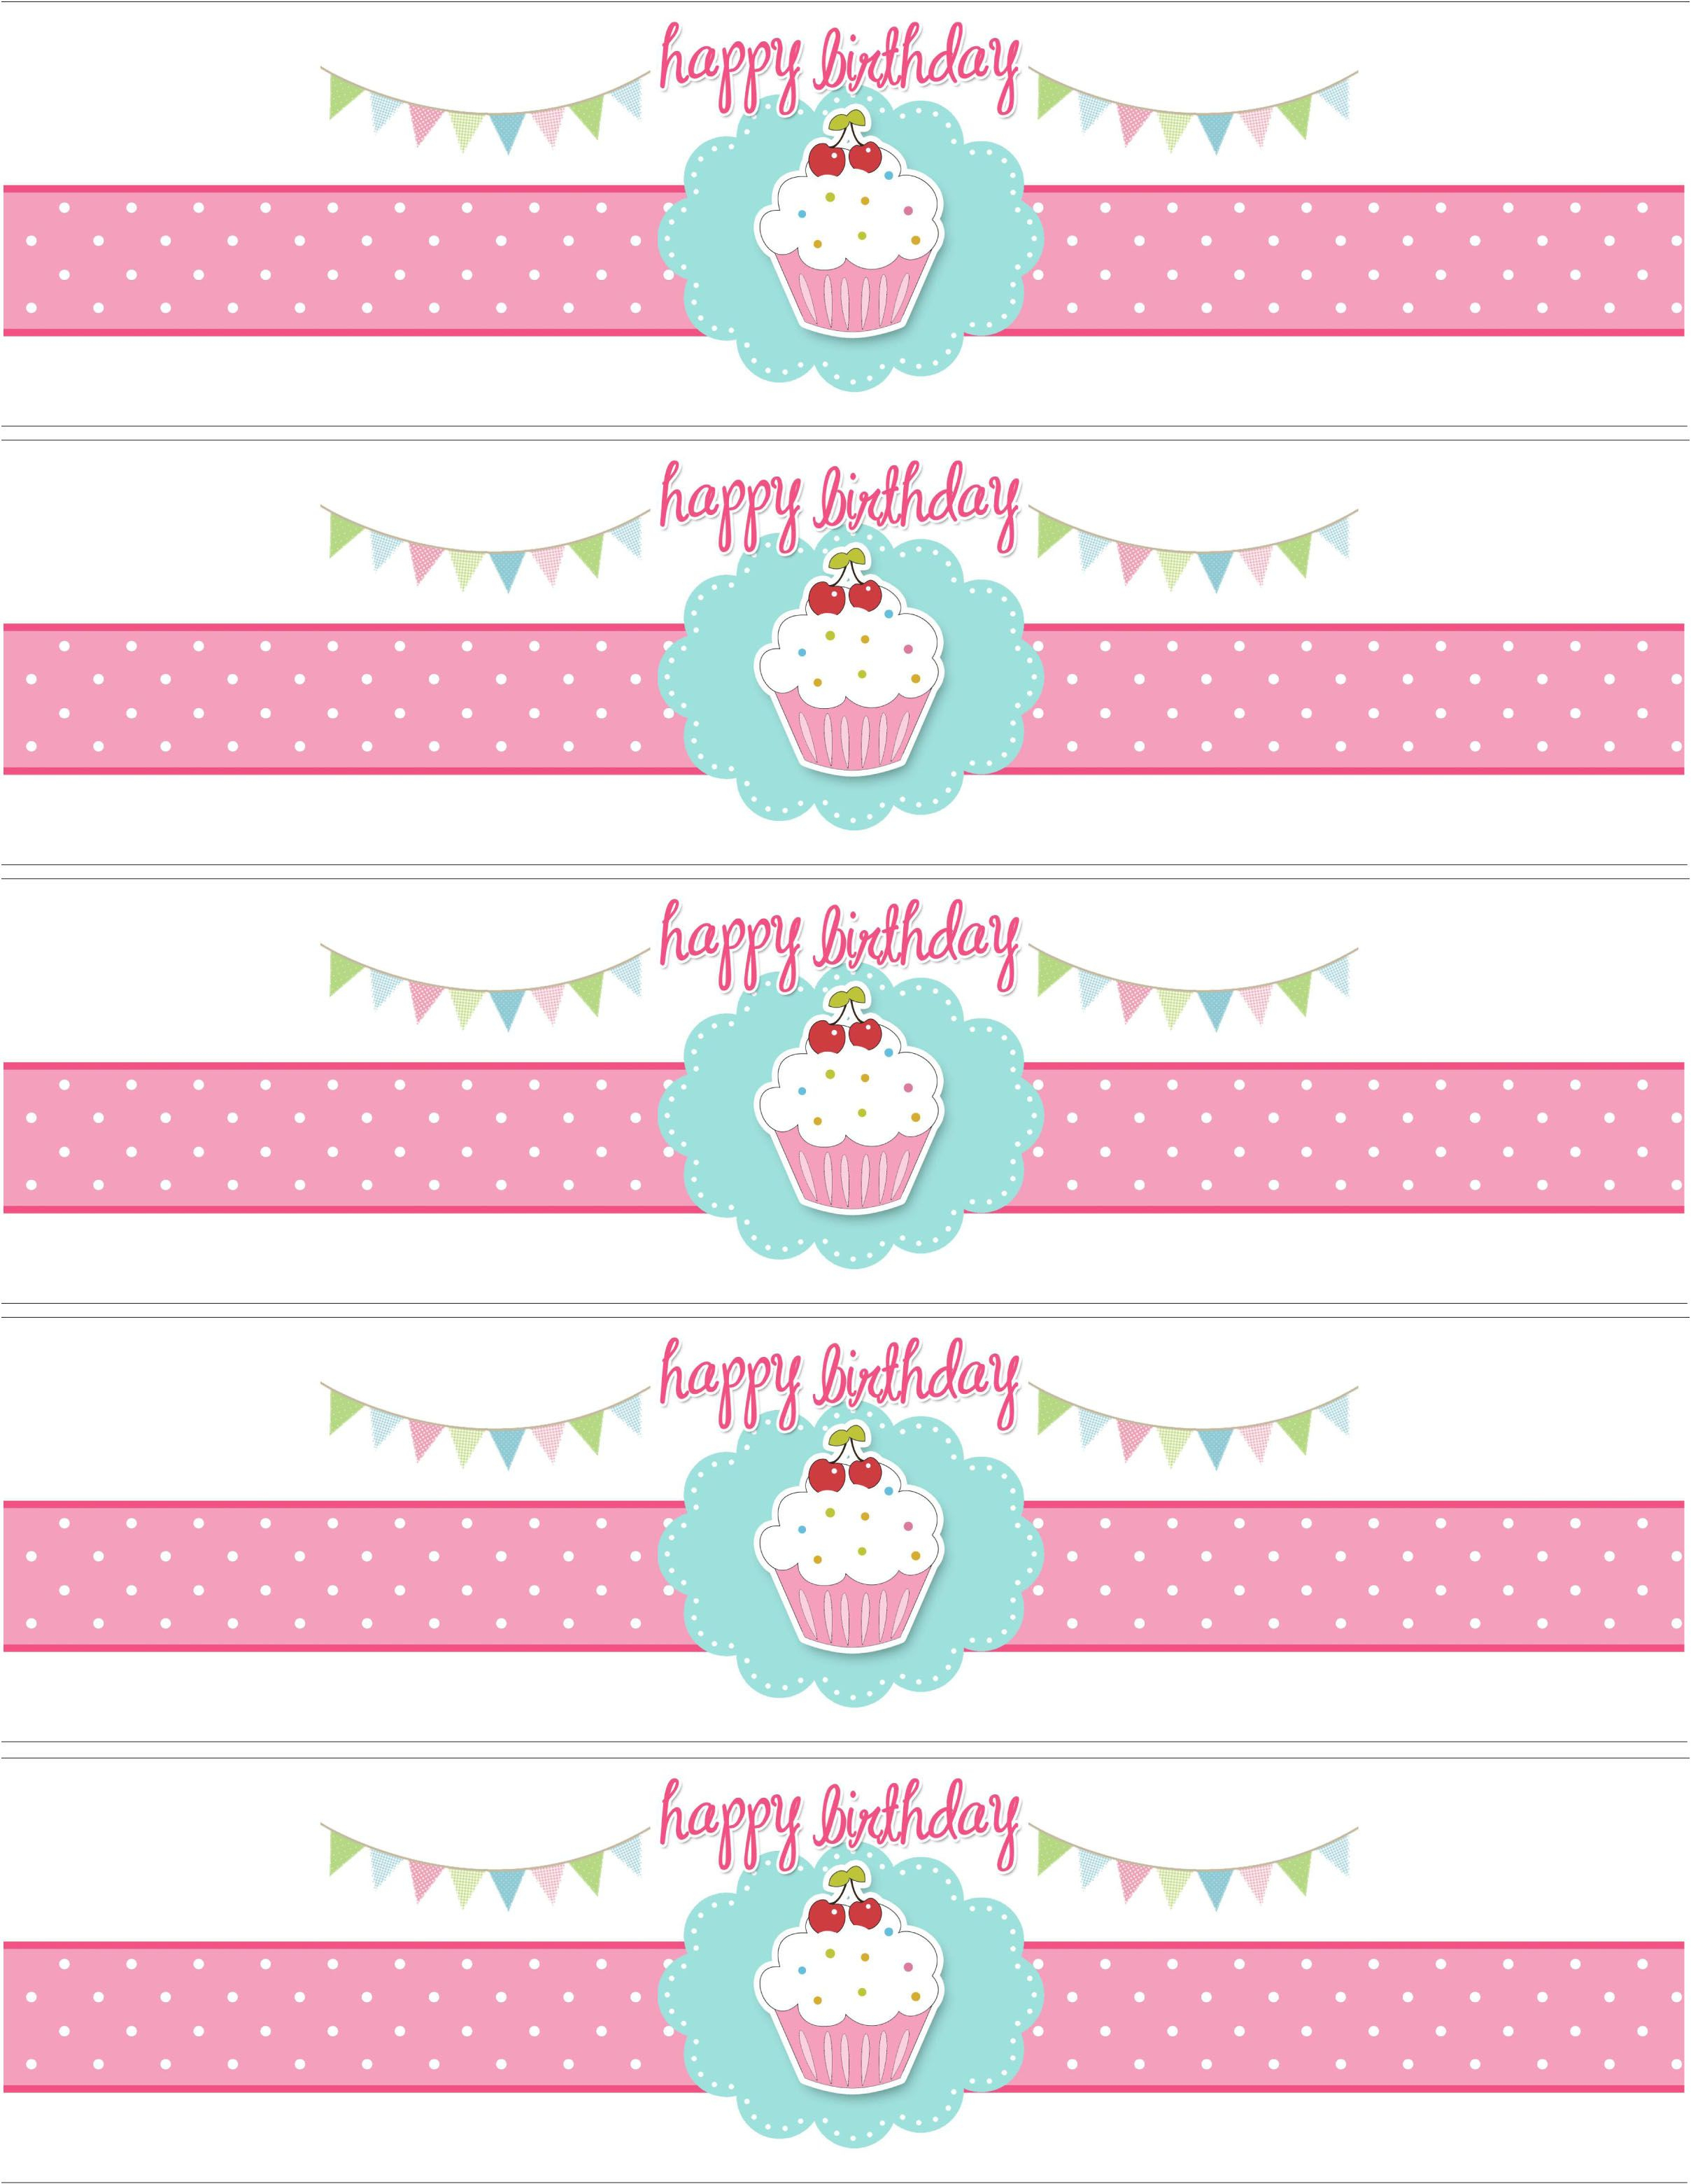 Cupcake Birthday Party With Free Printables | Diy Birthday Party - Free Printable Water Bottle Labels For Birthday